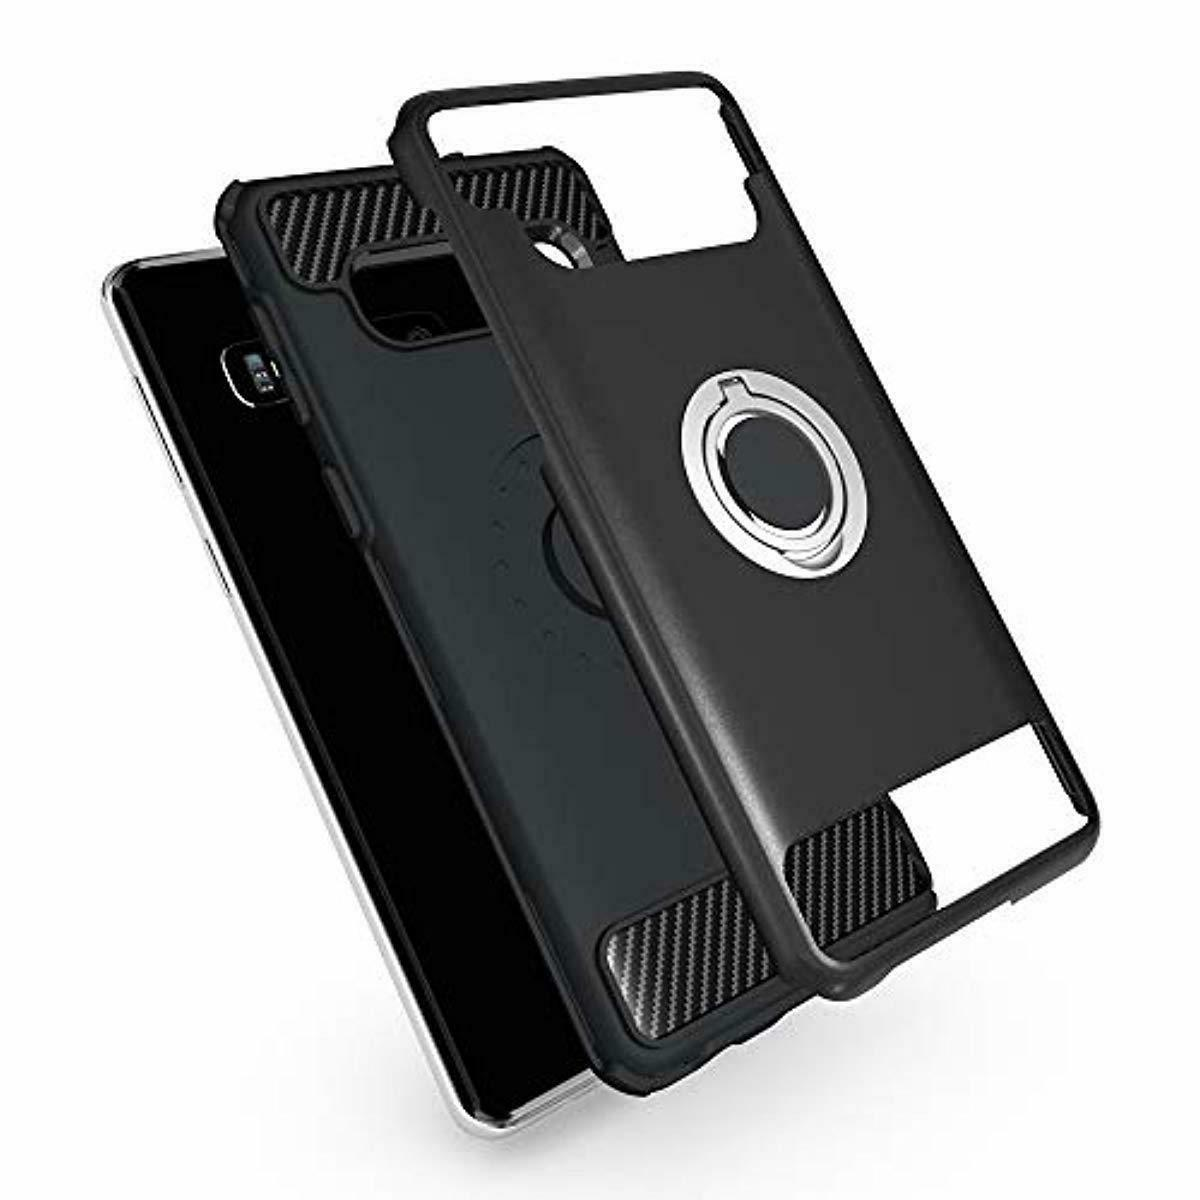 Asuwish Case for Samsung S10 with Tempered Glass Protec